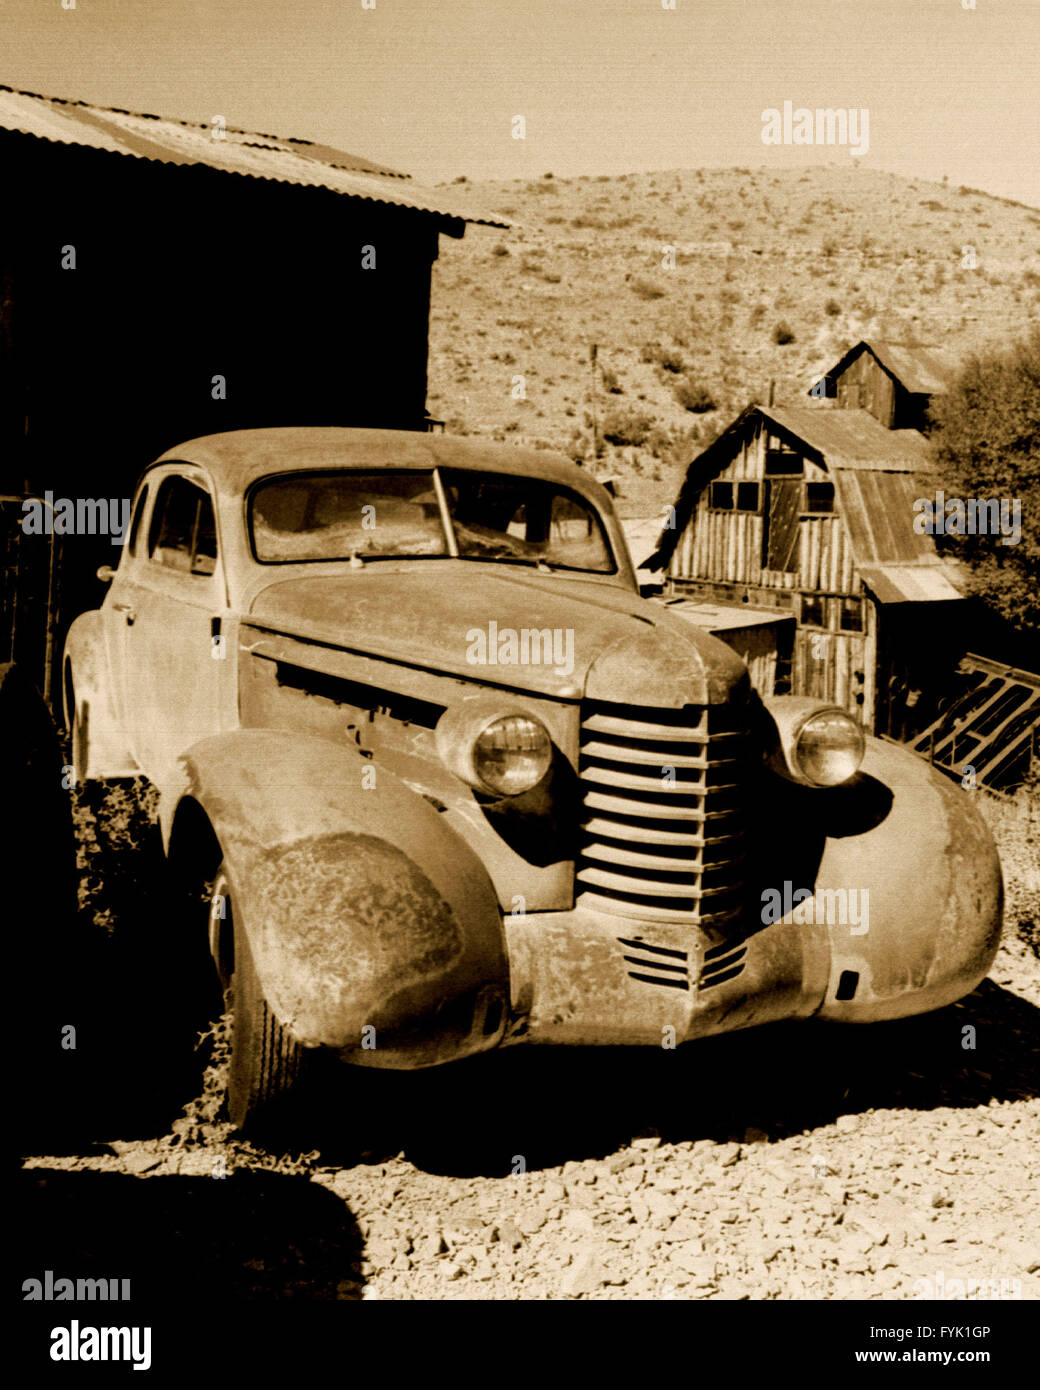 An evil looking mobster type vintage vehicle rusting and rotting in the Arizona sun. - Stock Image